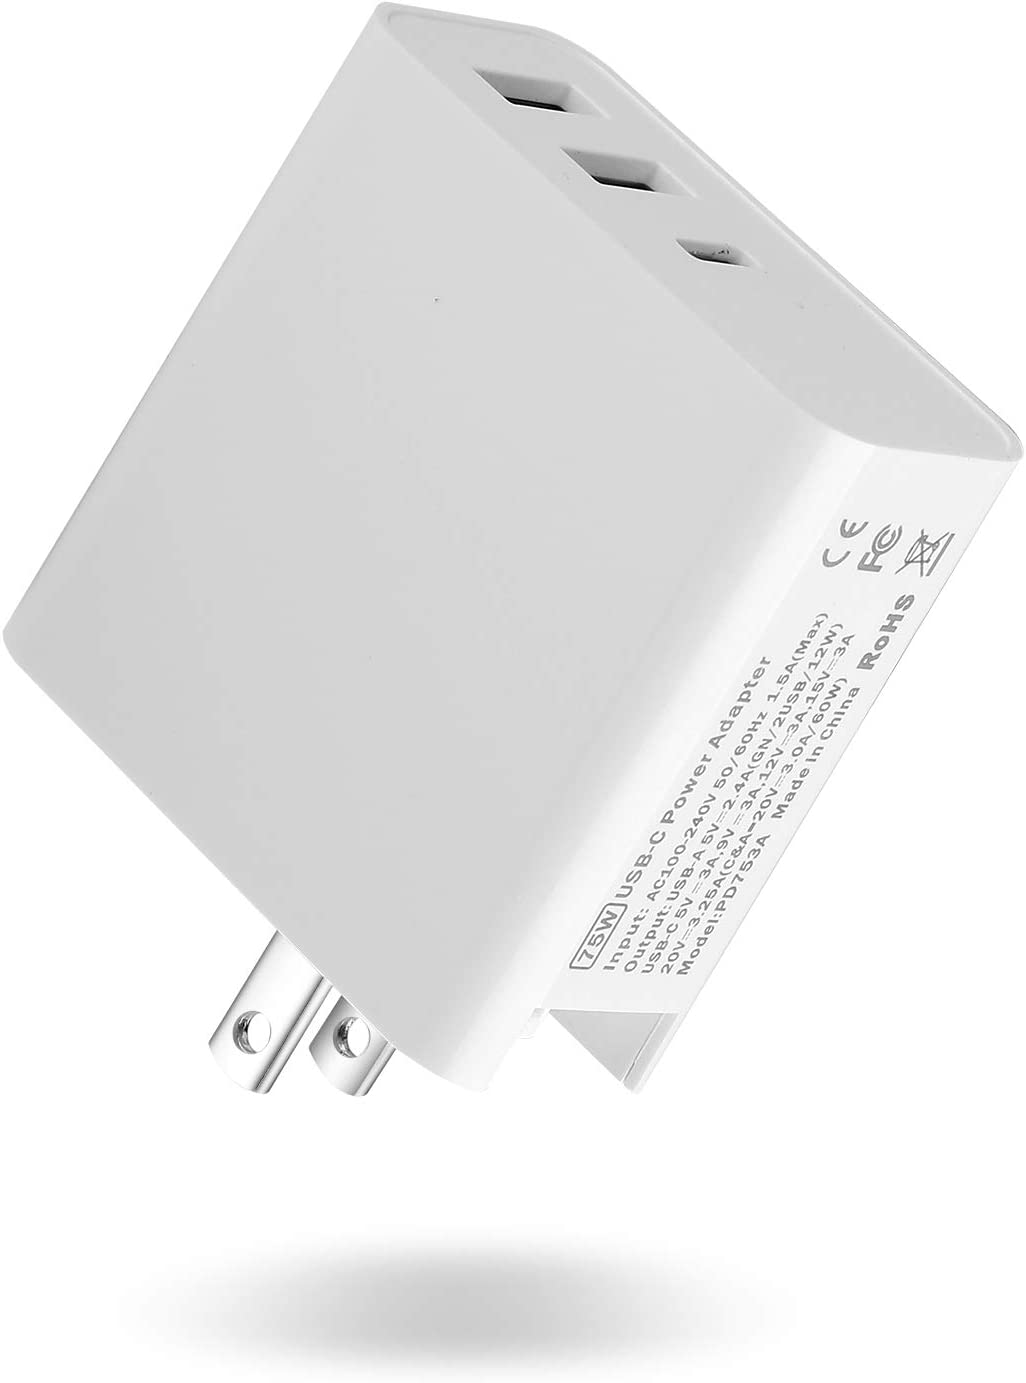 USB C Wall Charger 75W PD  jiubo  Desktop Travel Charger, 1 Type C Plus 2 USB, Foldable Plug for Ipad Pro,Compatible with Pro, iPad Pro, iPhone 11 / MacBook Air/Xs Max/XS/XR, Nintendo Switch and More